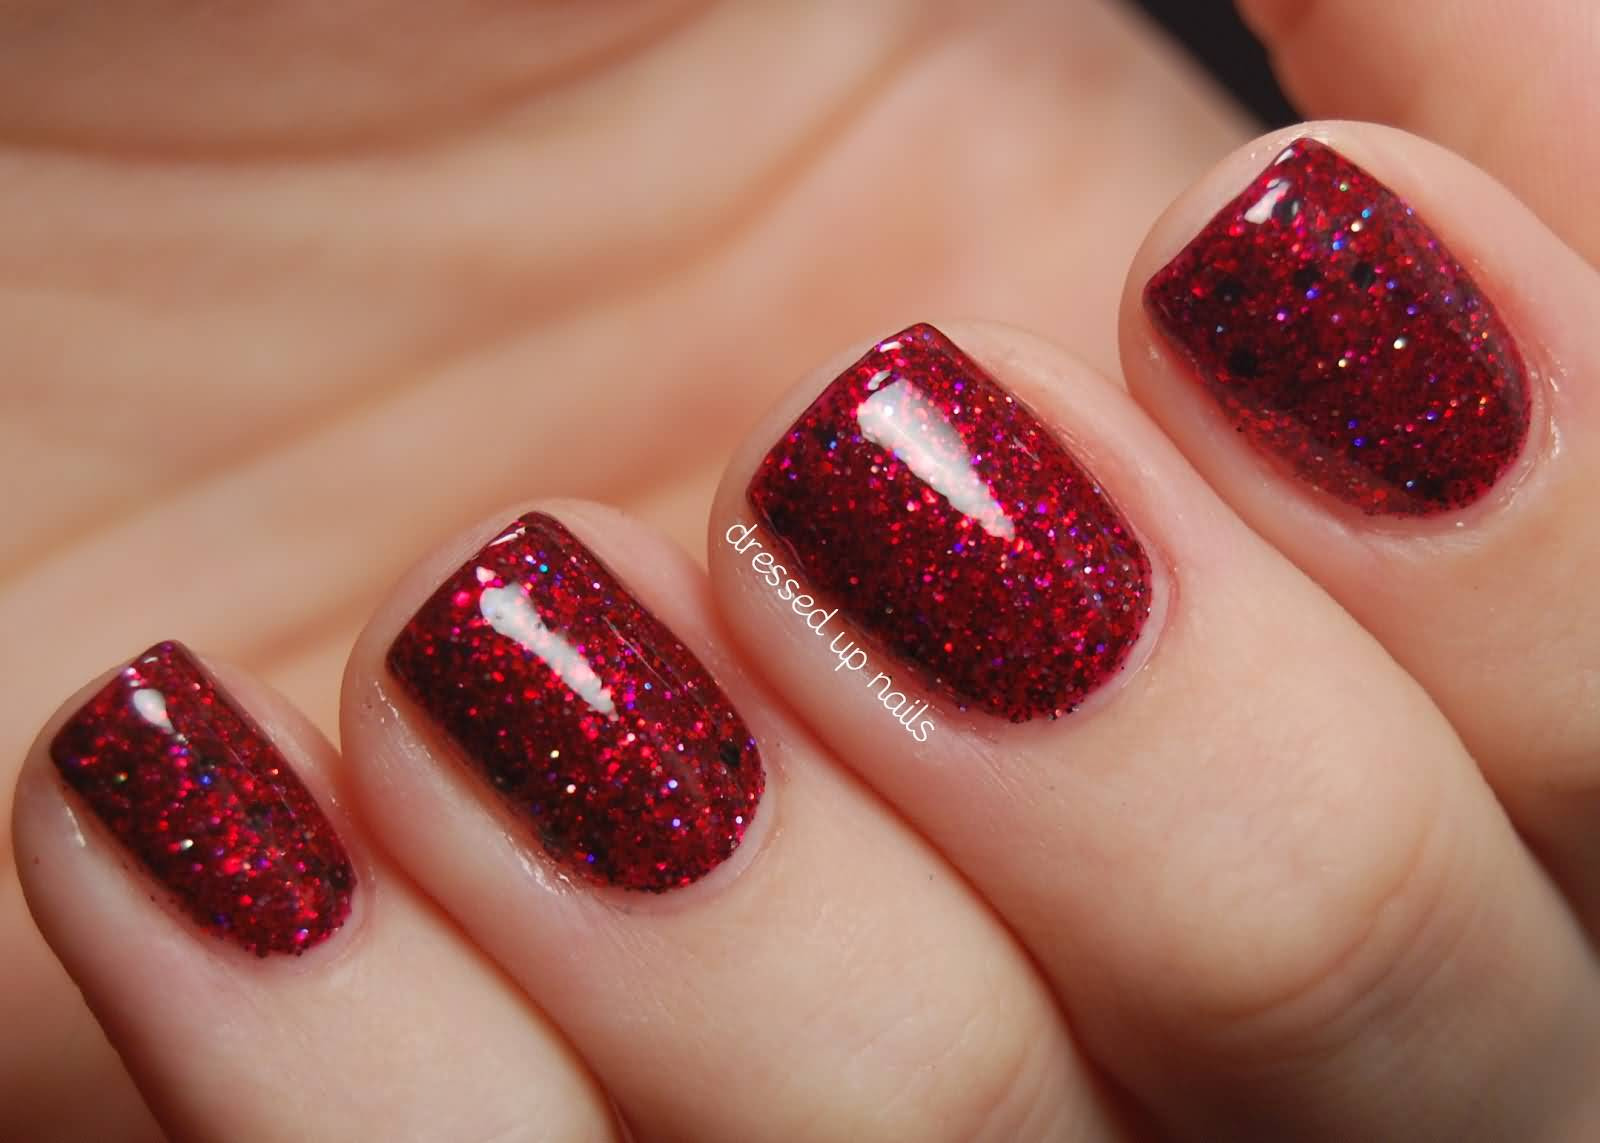 Red Glitter Gel Nail Art Design Idea